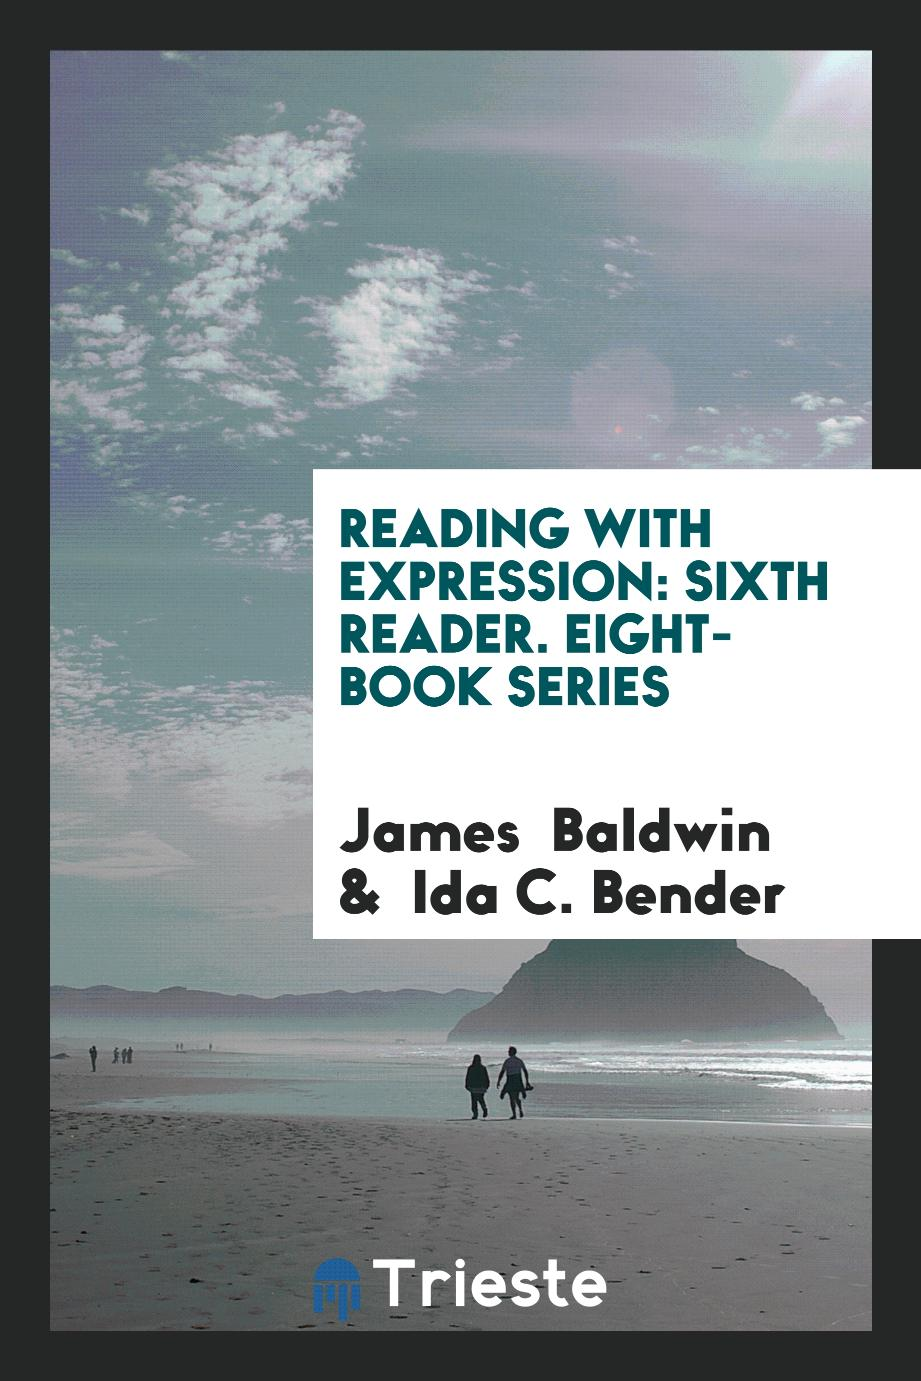 Reading with Expression: Sixth Reader. Eight-Book Series